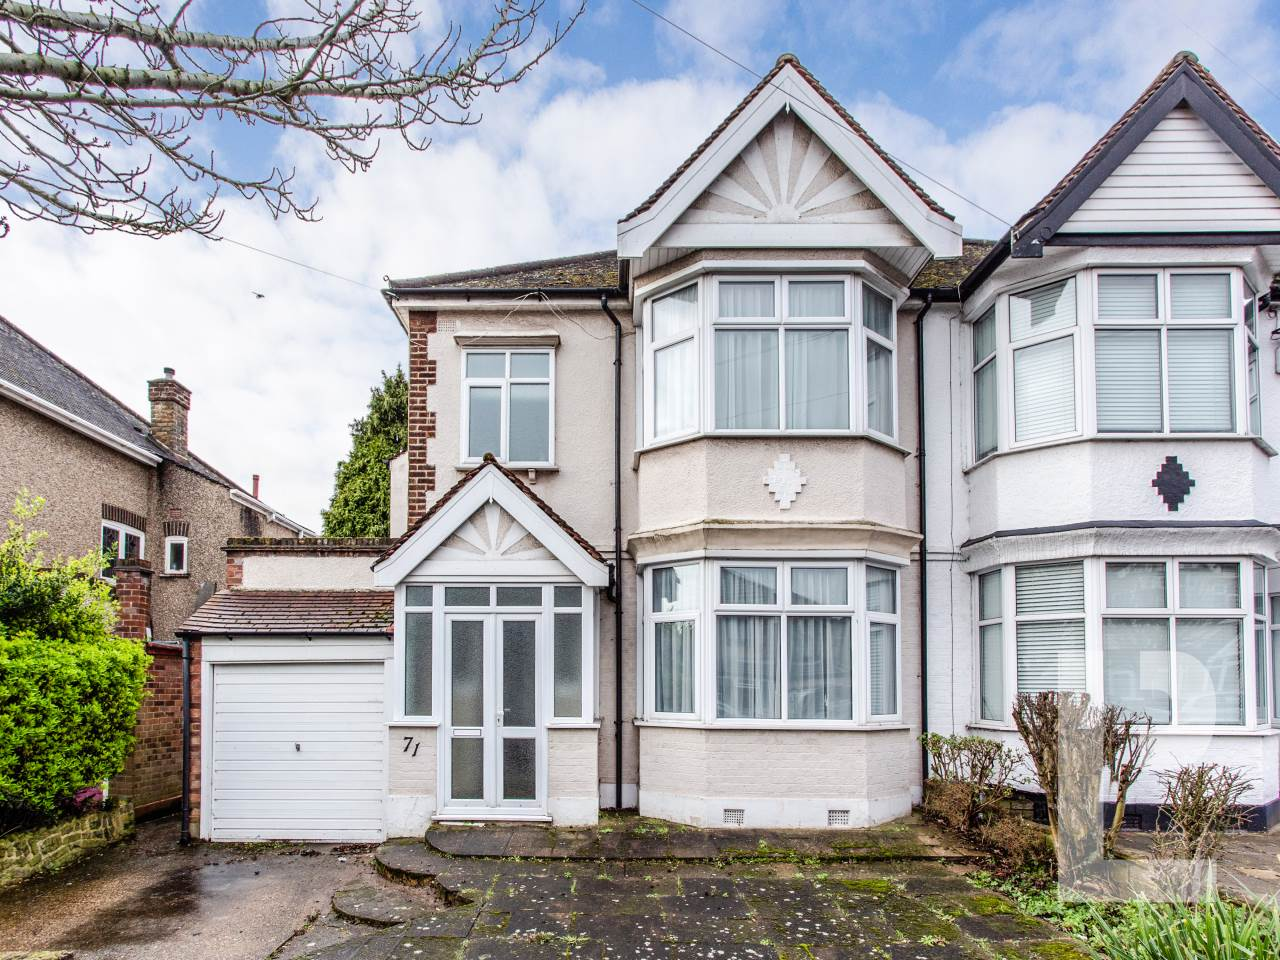 3 bed house for sale in Barkingside , IG6